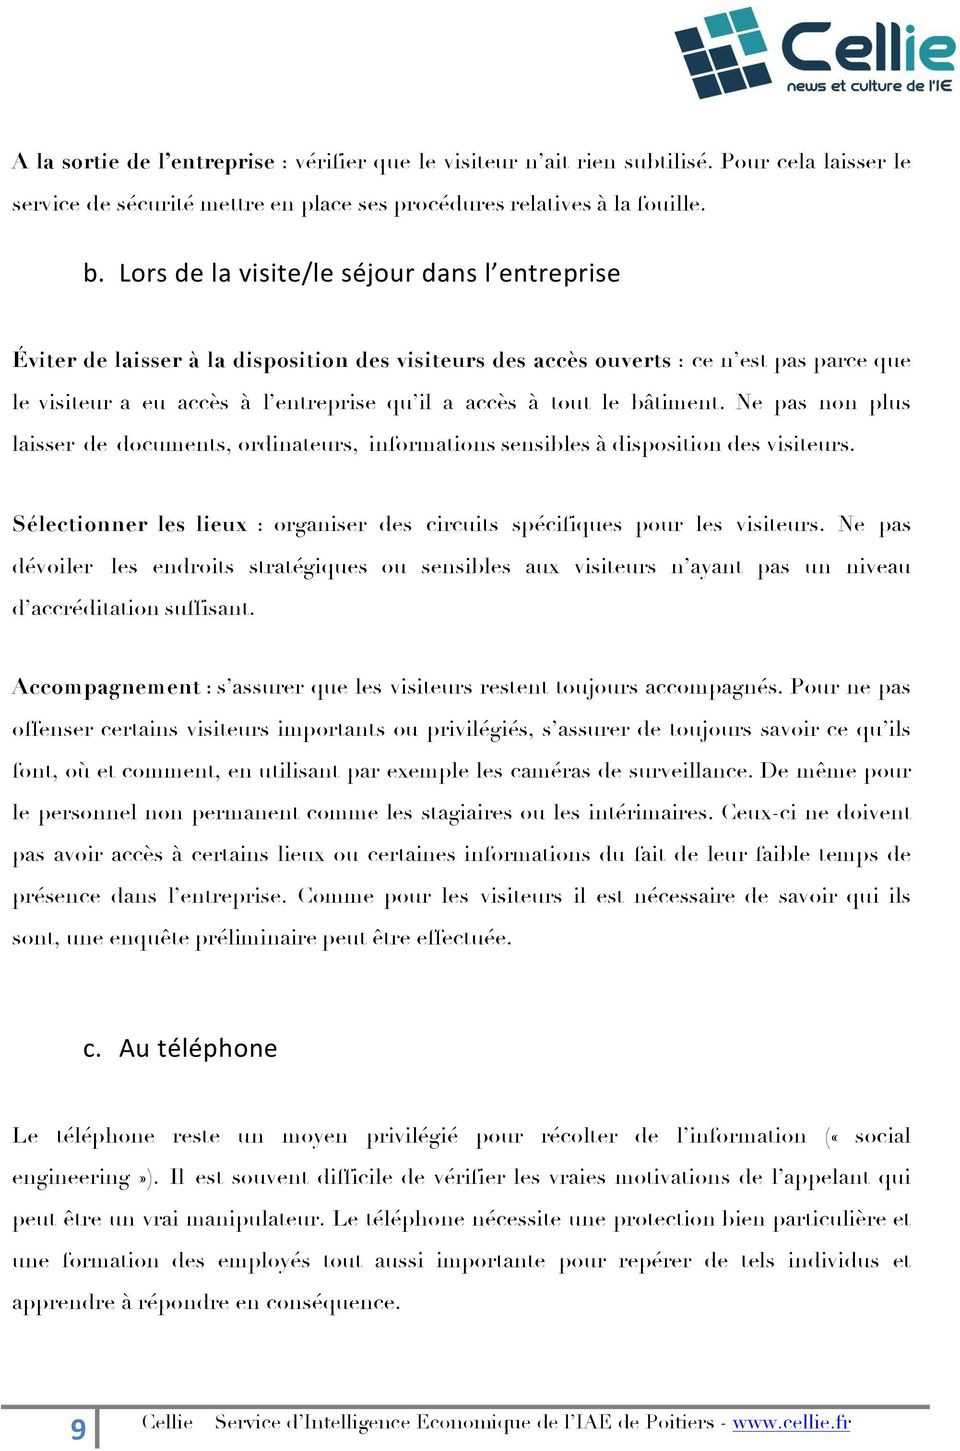 bâtiment. Ne pas non plus laisser de documents, ordinateurs, informations sensibles à disposition des visiteurs. Sélectionner les lieux : organiser des circuits spécifiques pour les visiteurs.